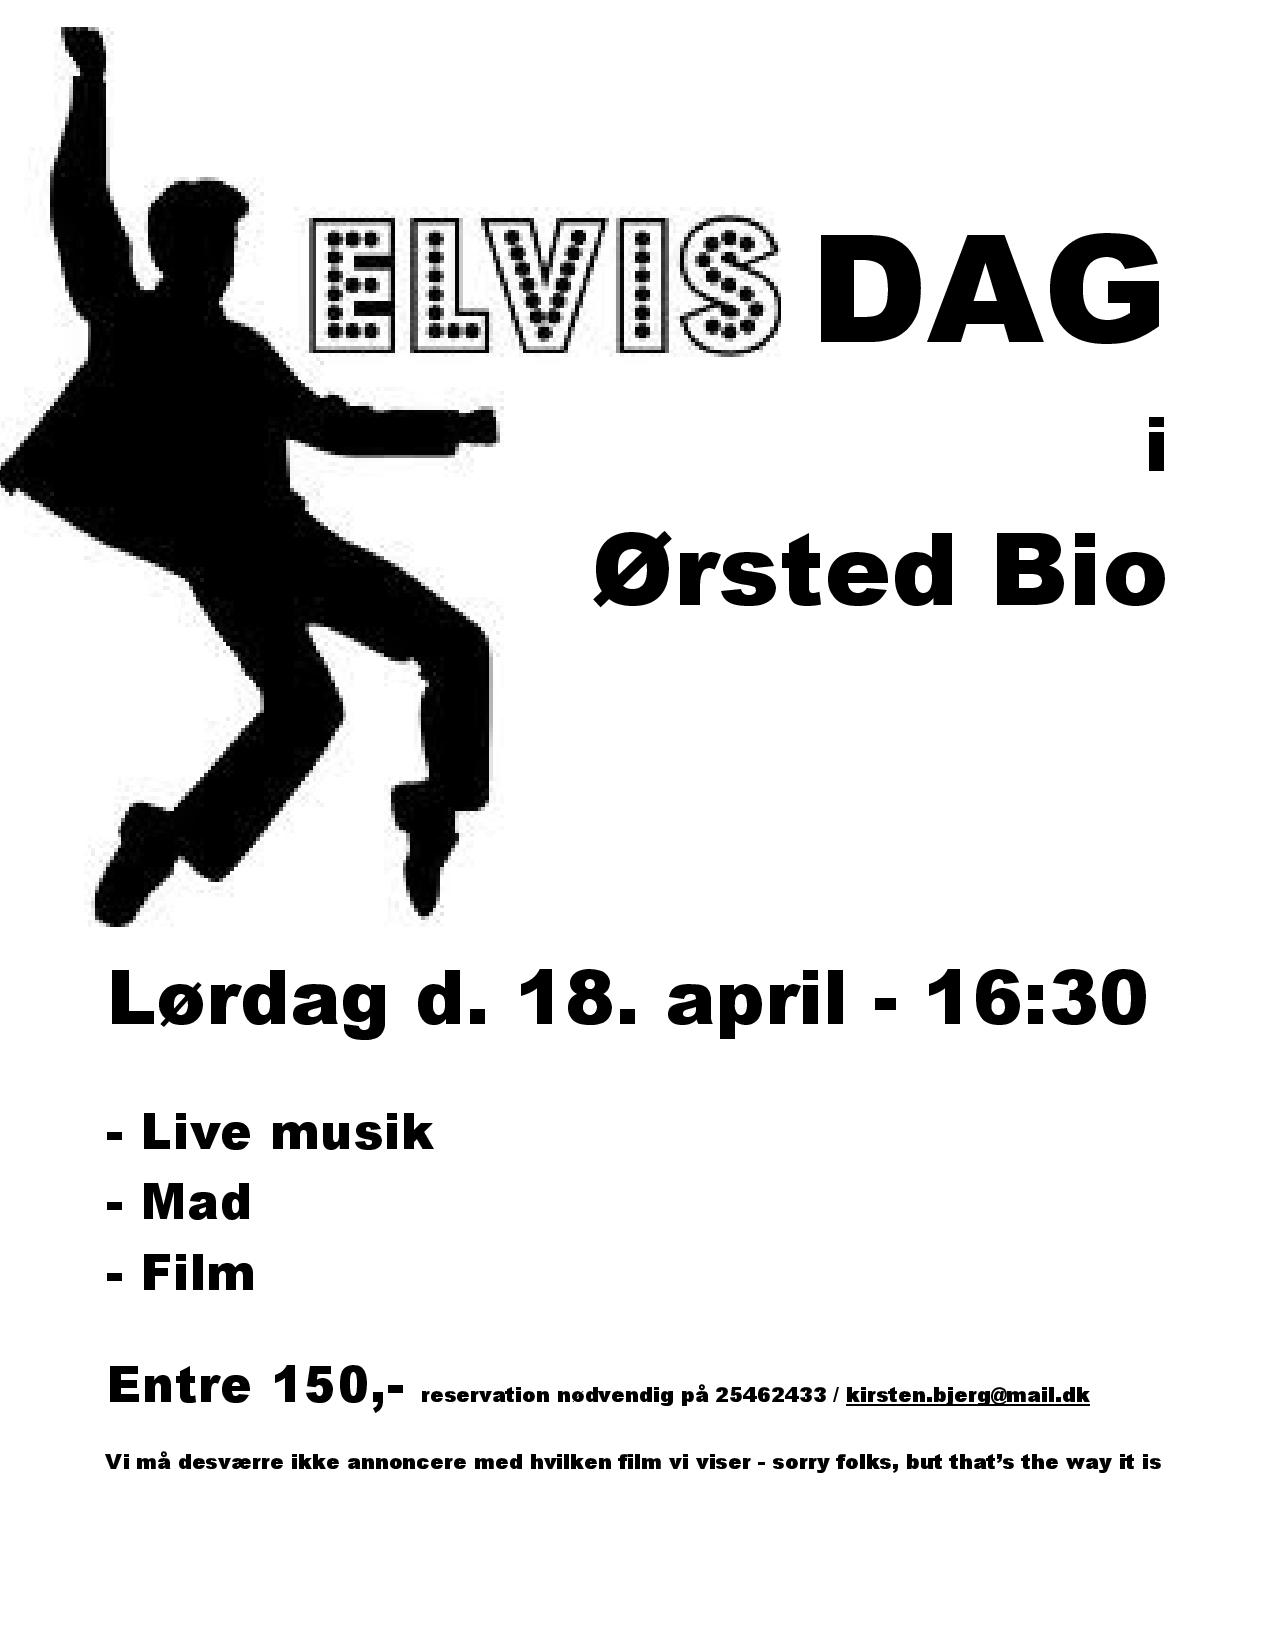 Annonce Elvis DAG 2015-page-001